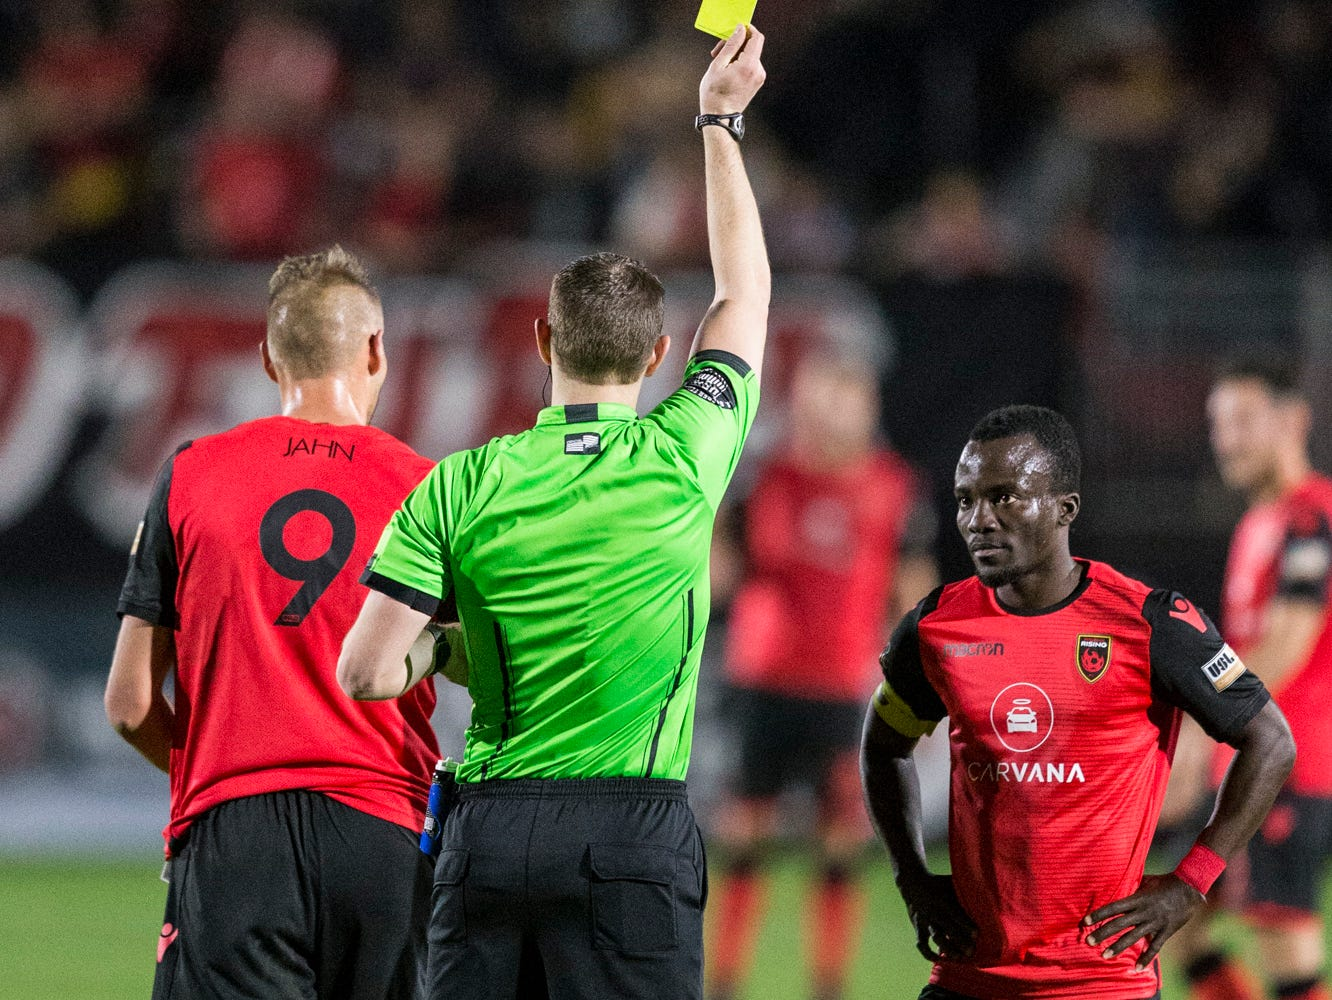 Phoenix Rising's Adam Jahn is given a yellow card against Colorado Springs in the first half on Saturday, Mar. 30, 2019, at Casino Arizona Field in Tempe, Ariz.